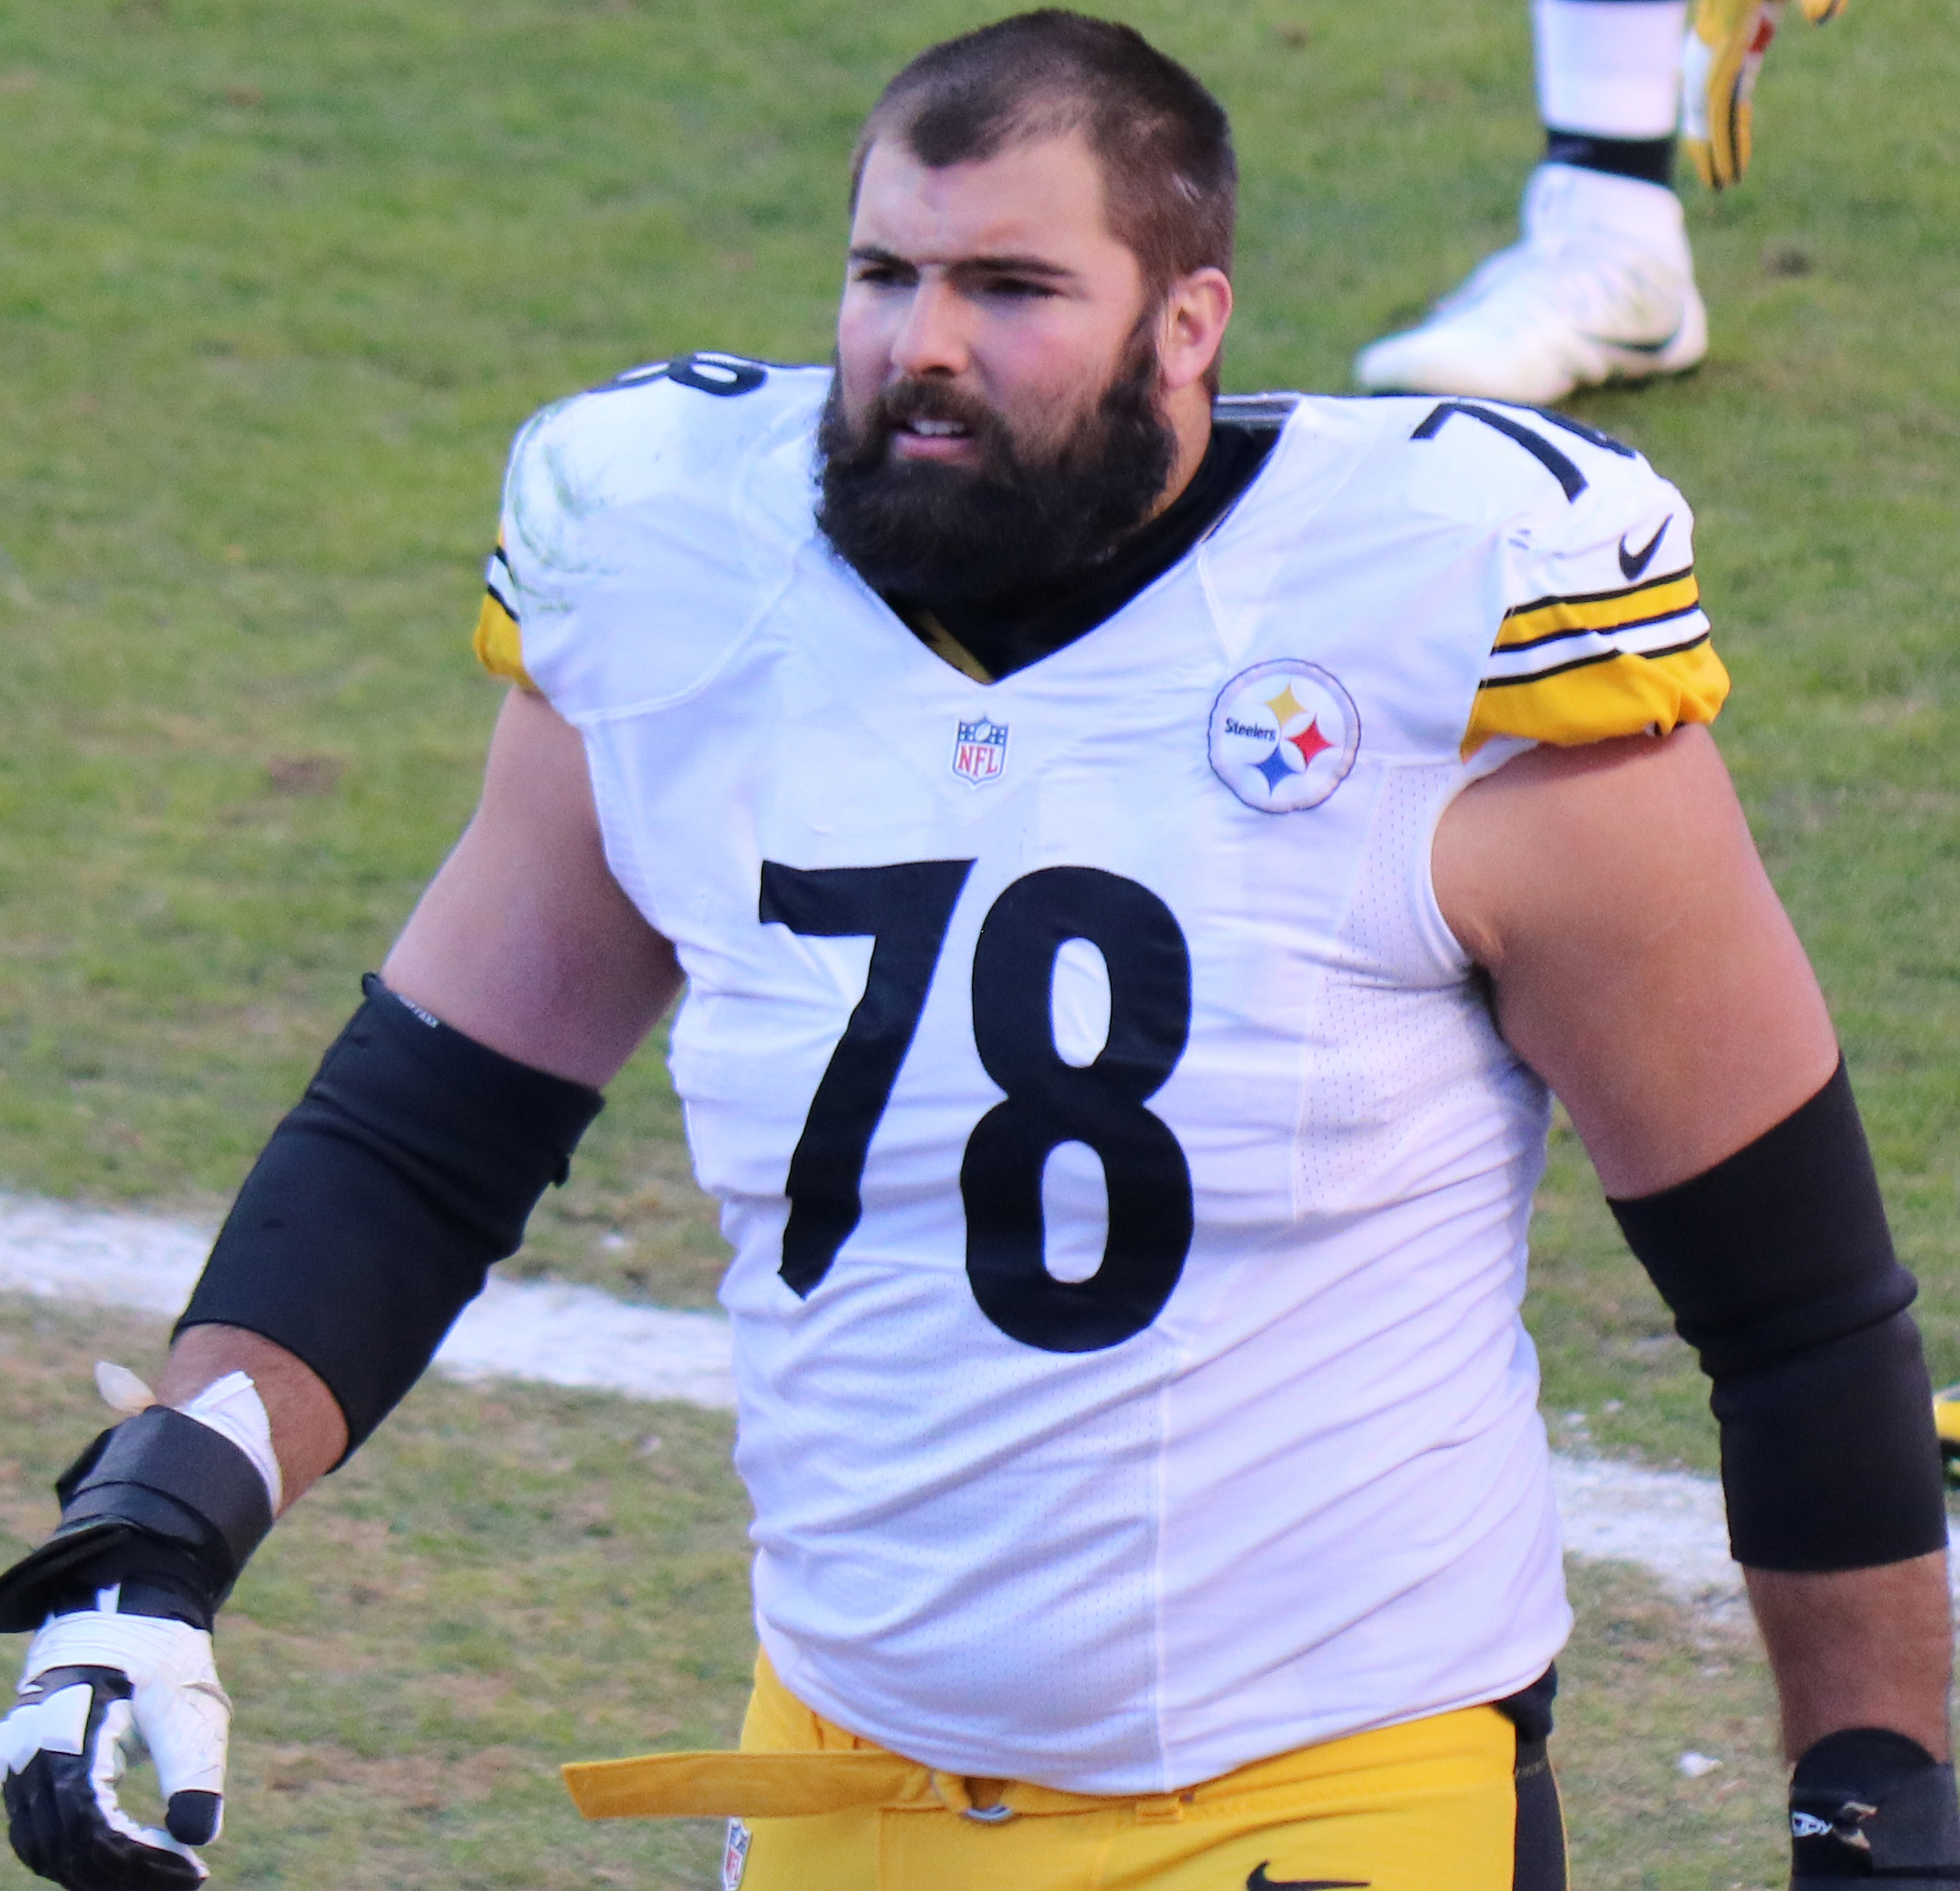 Left tackle Alejandro Villanueva became a counterprotest symbol. (credit: Courtesy of Jeffrey Beall via Flickr Wikimedia Commons)